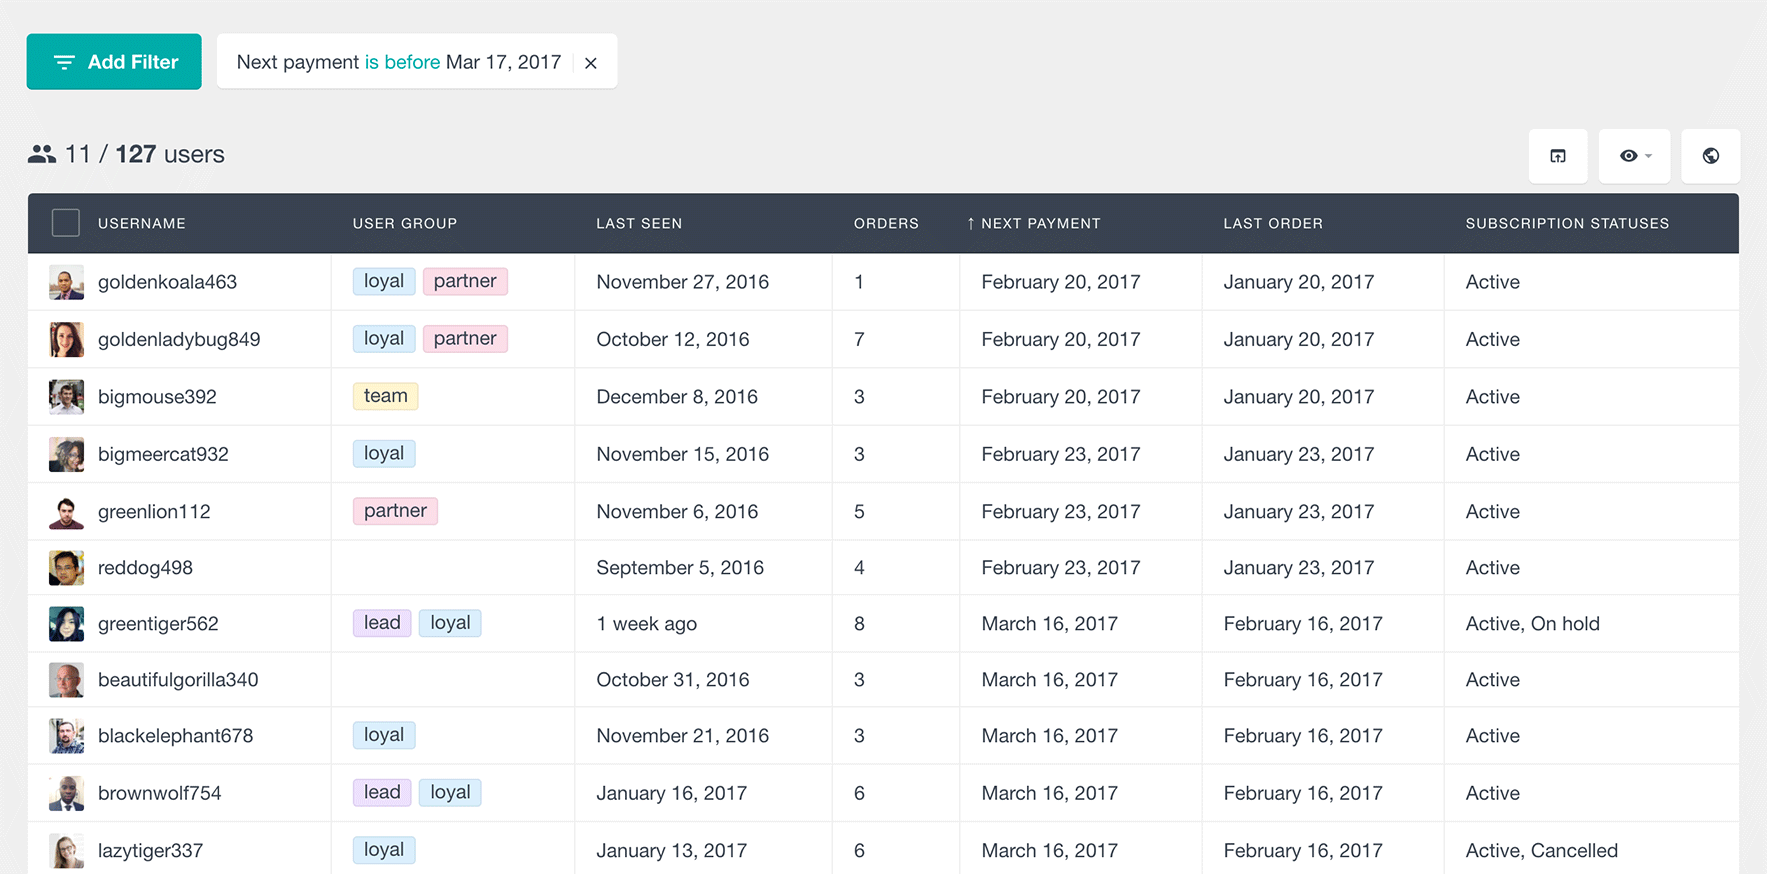 woocommerce subscriptions next payment filter